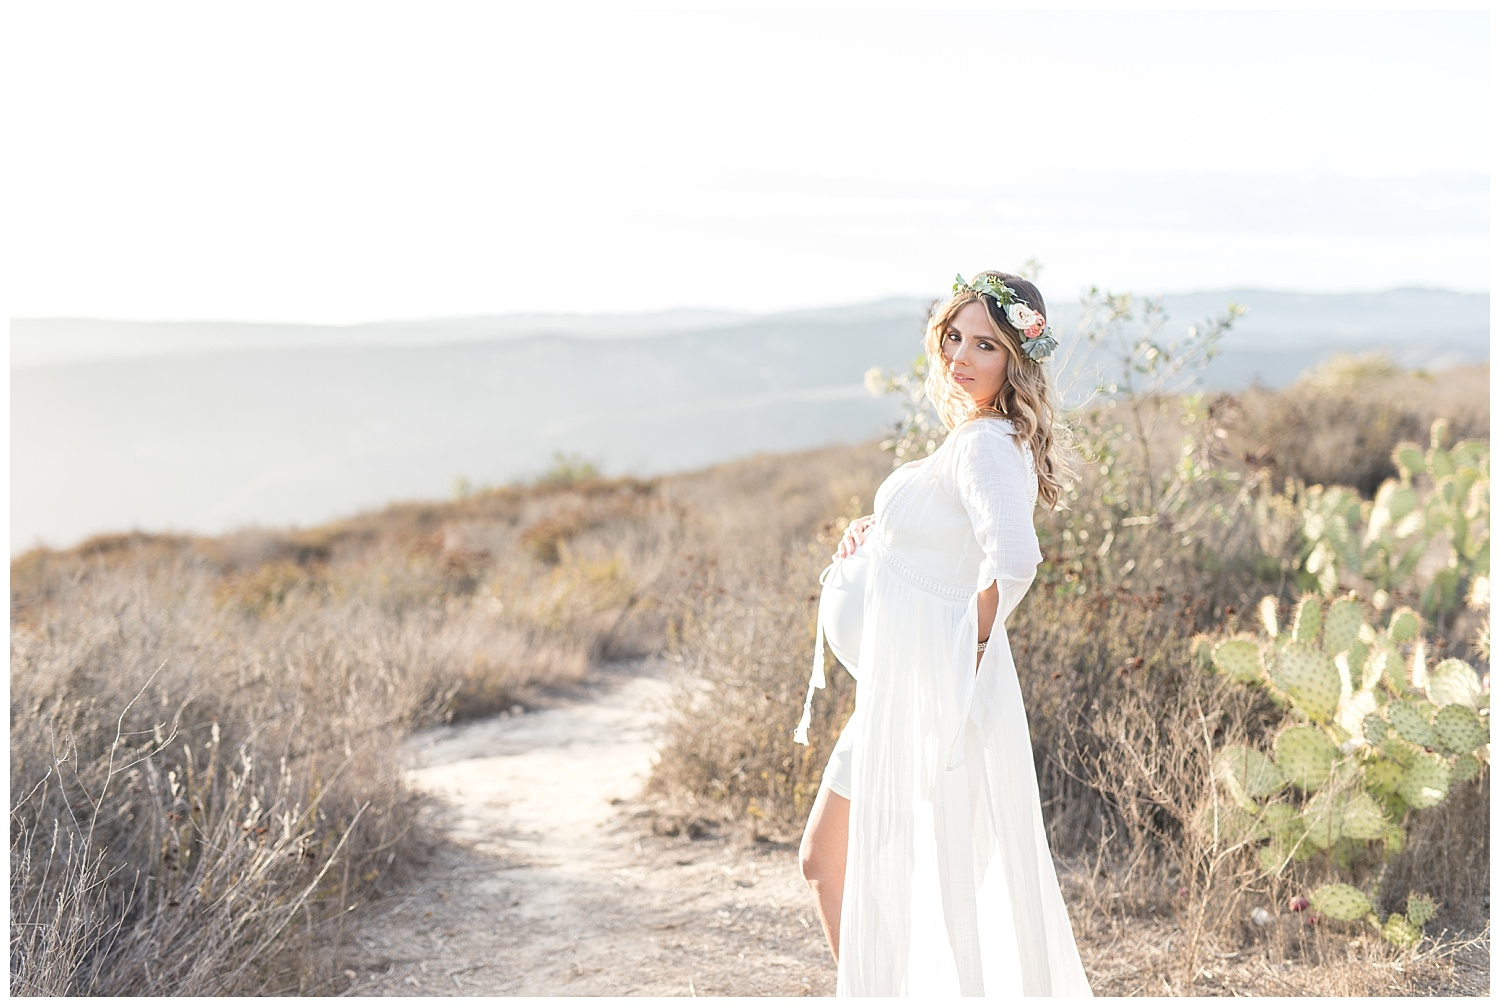 ashley - laguna beach, orange county hiking trail - maternity-0037